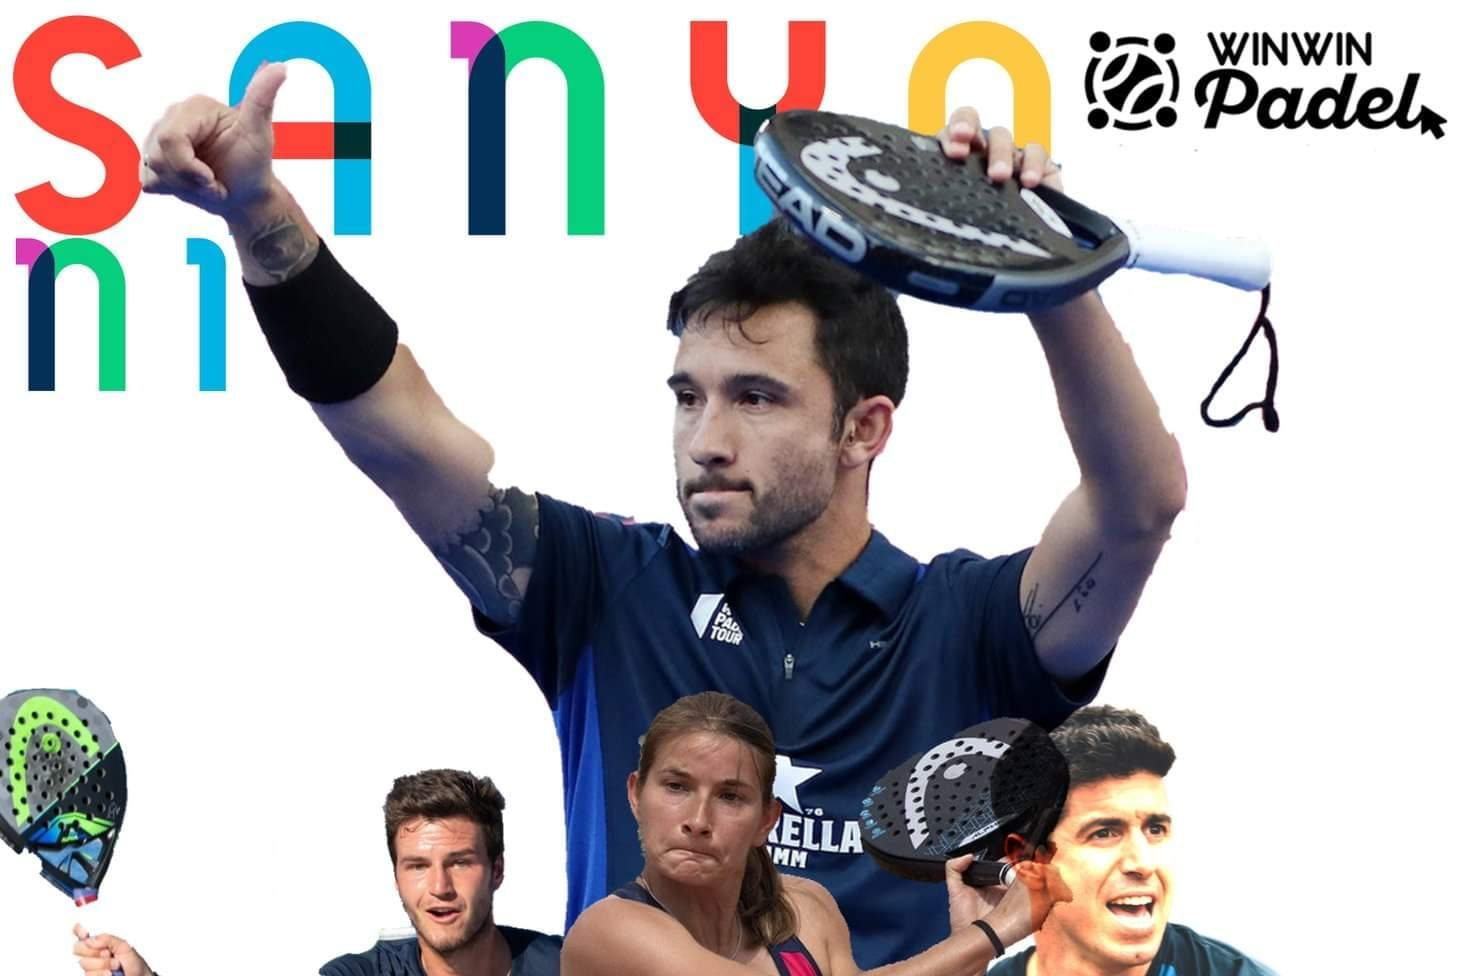 Exhibition Head Padel Open 2019 : Sanyo / Collombon vs Andrini / Bergeron